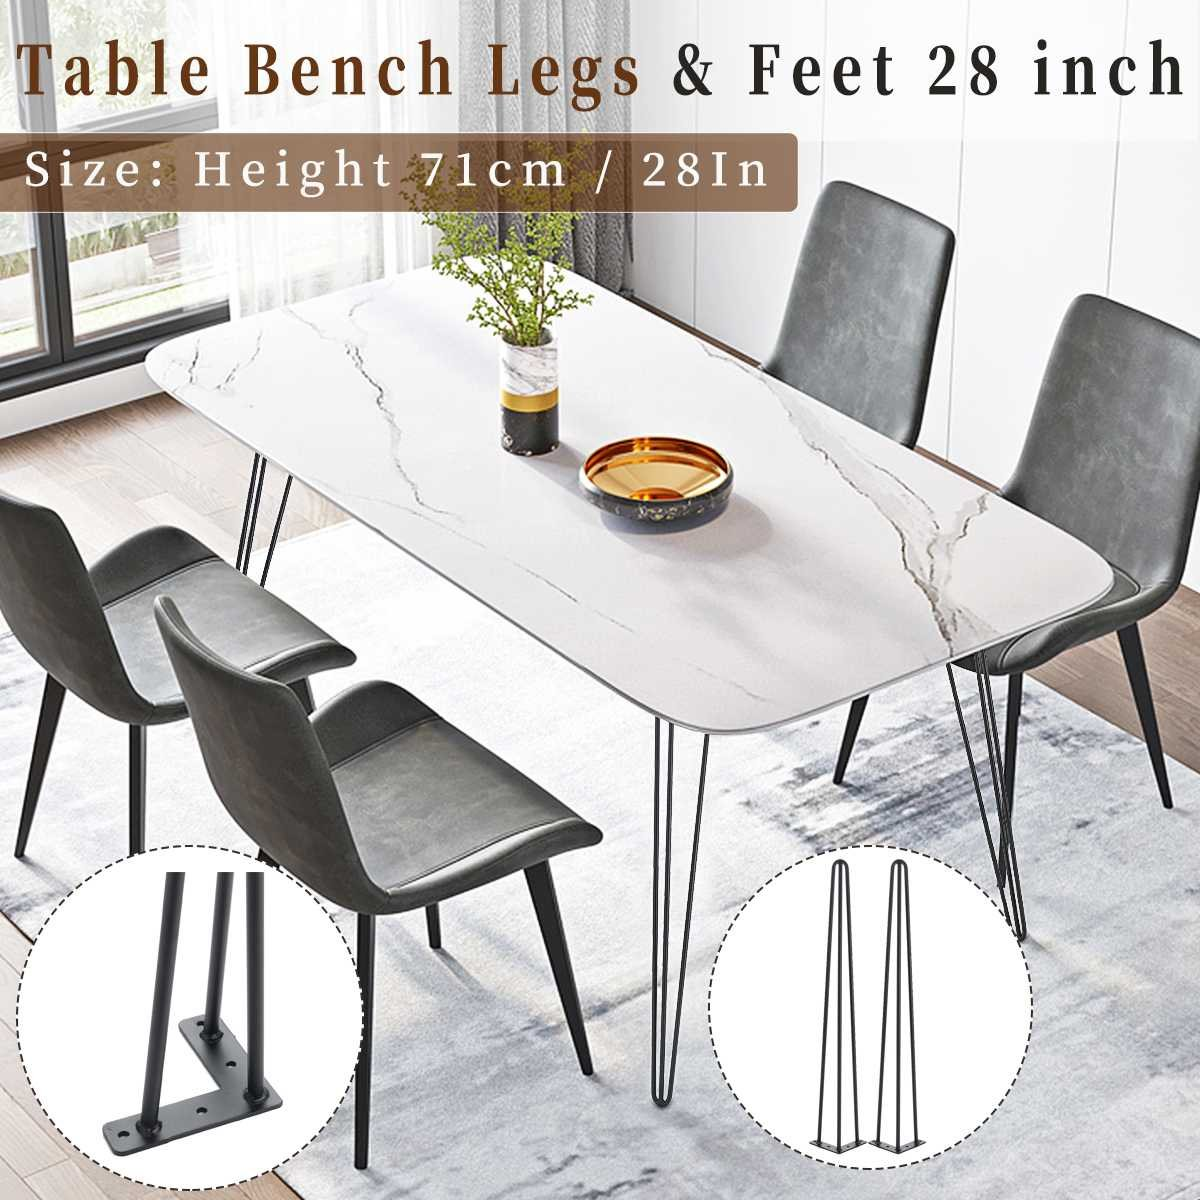 2pcs Square Shaped Coffee Table Legs Metal Table Desk Legs Nordic Style Furniture Legs Diy Handcrafts Furniture Accessories Super Promo Bfe7 Cicig